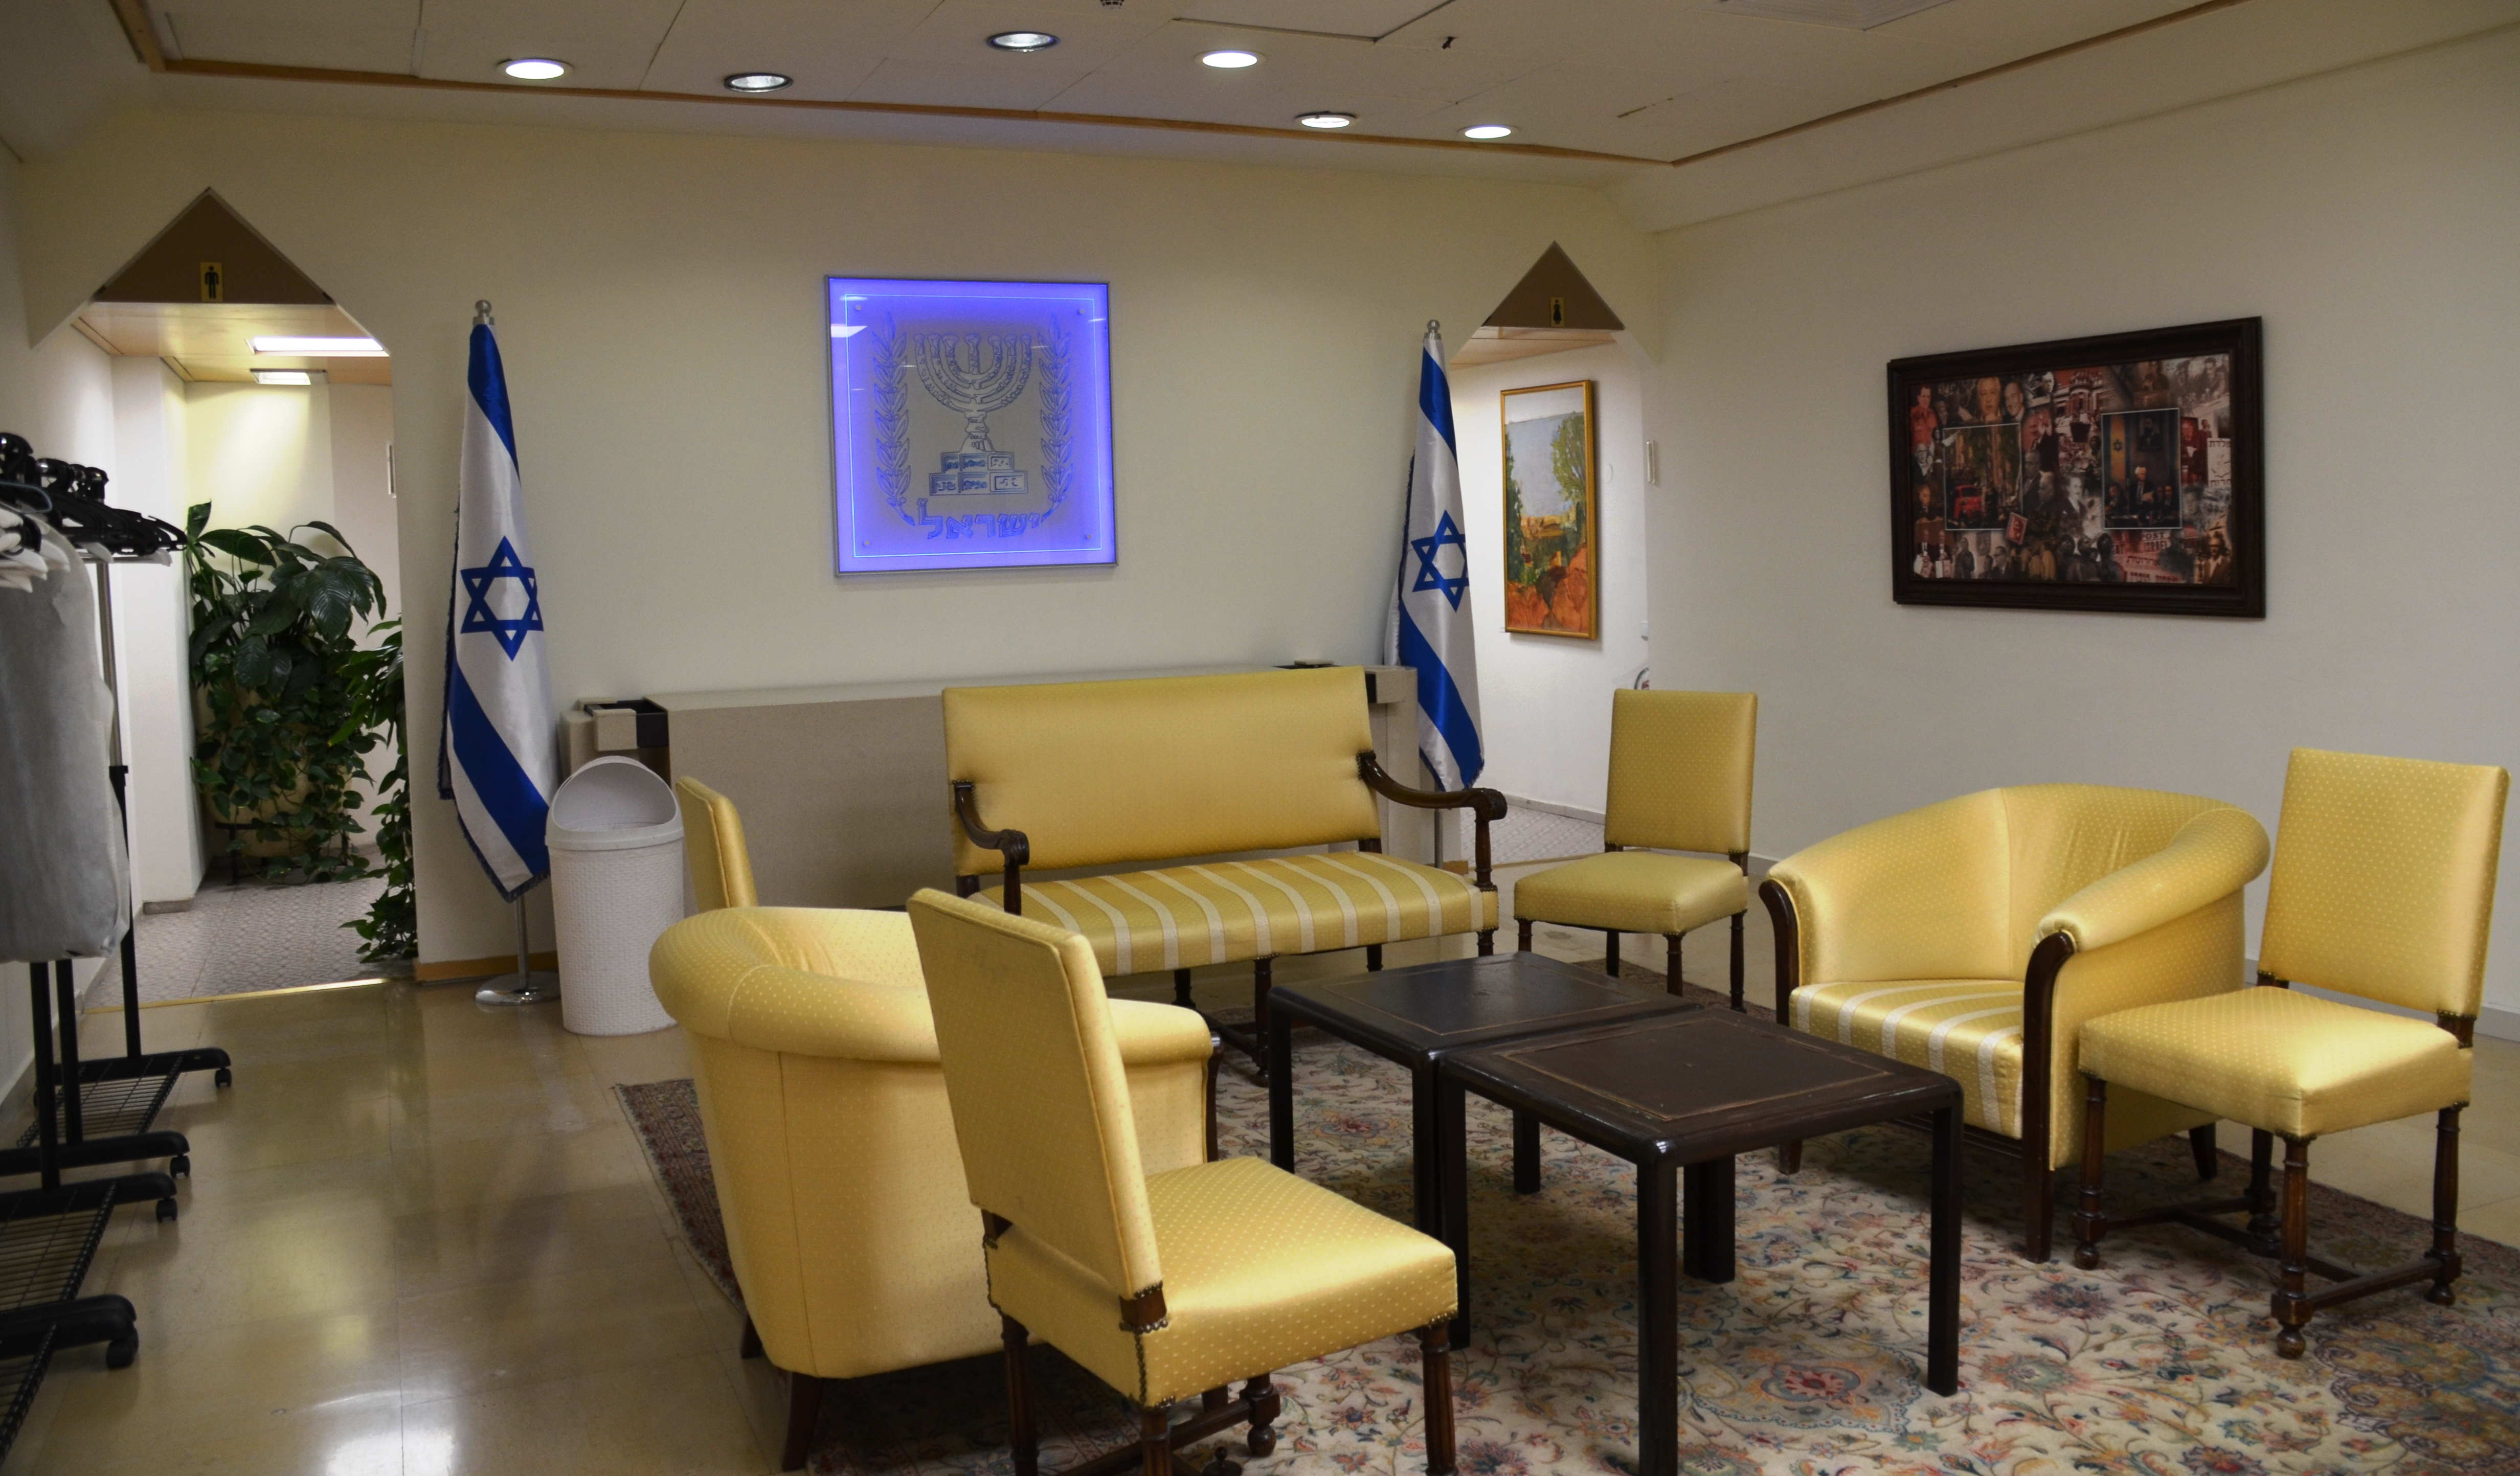 inside Beit Hanasi waiting room